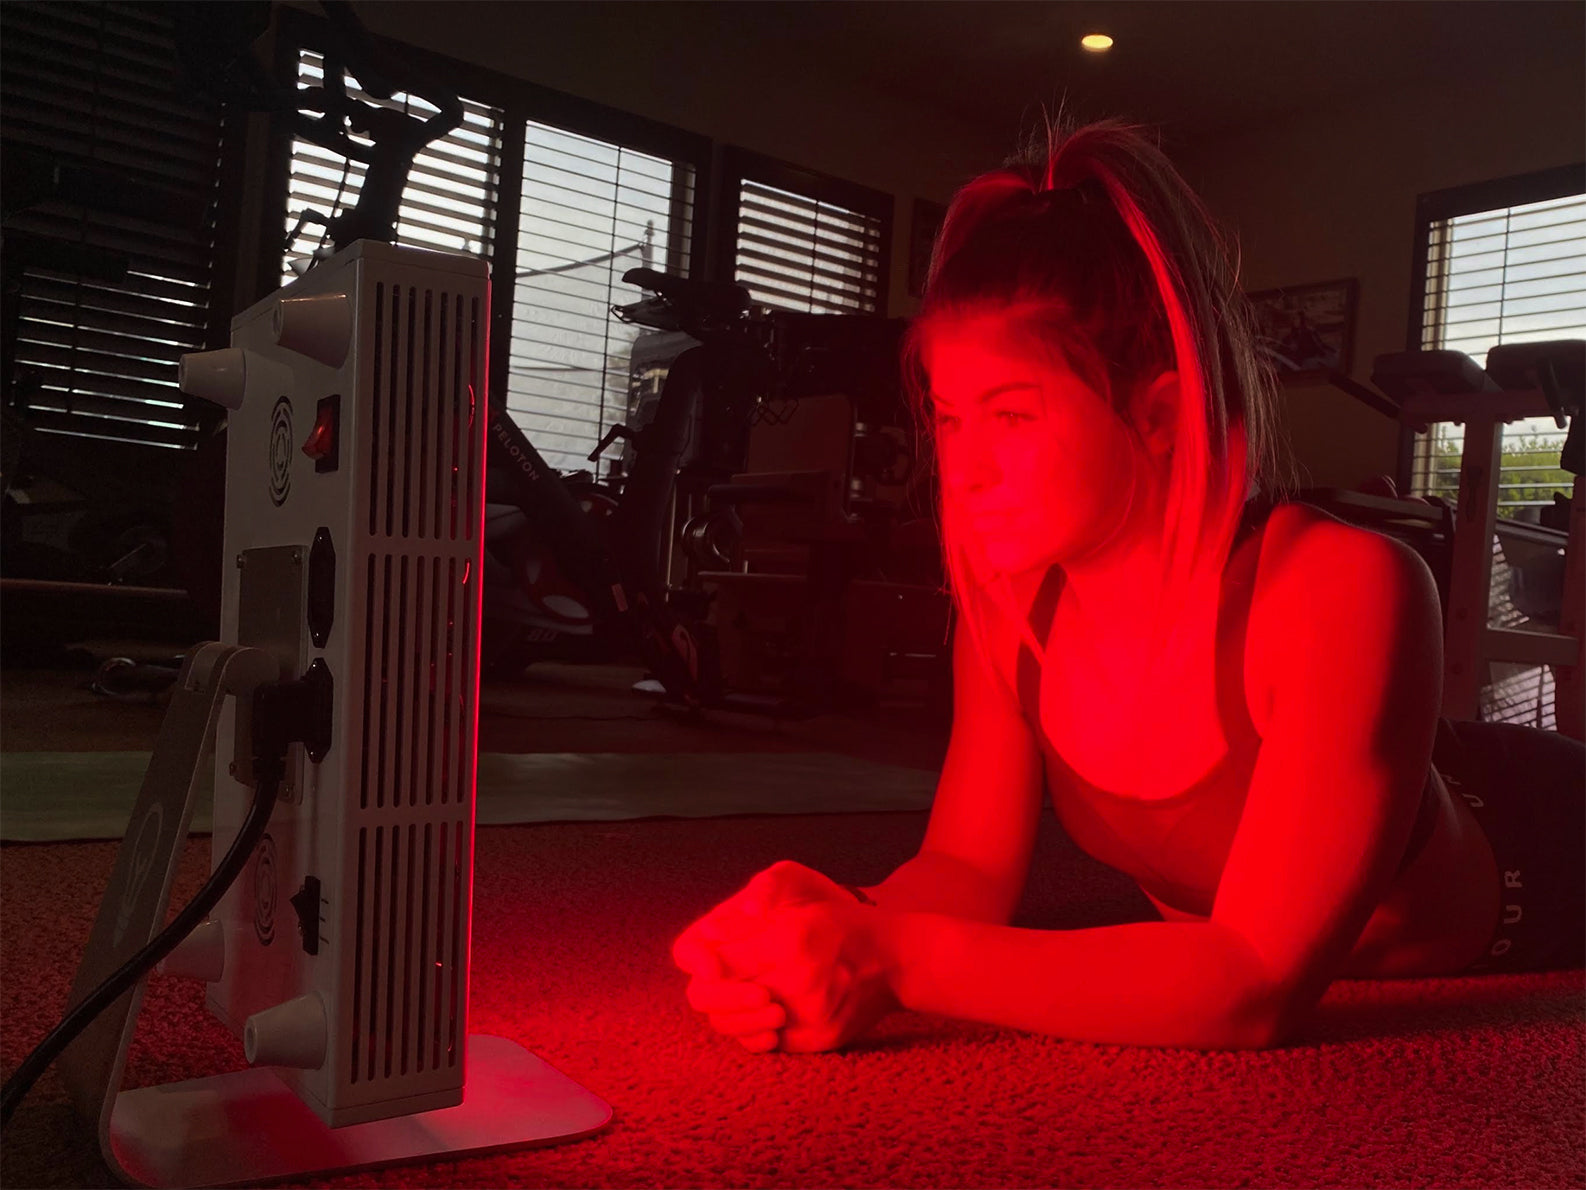 Hailie Deegan uses Joovv light therapy for skin health